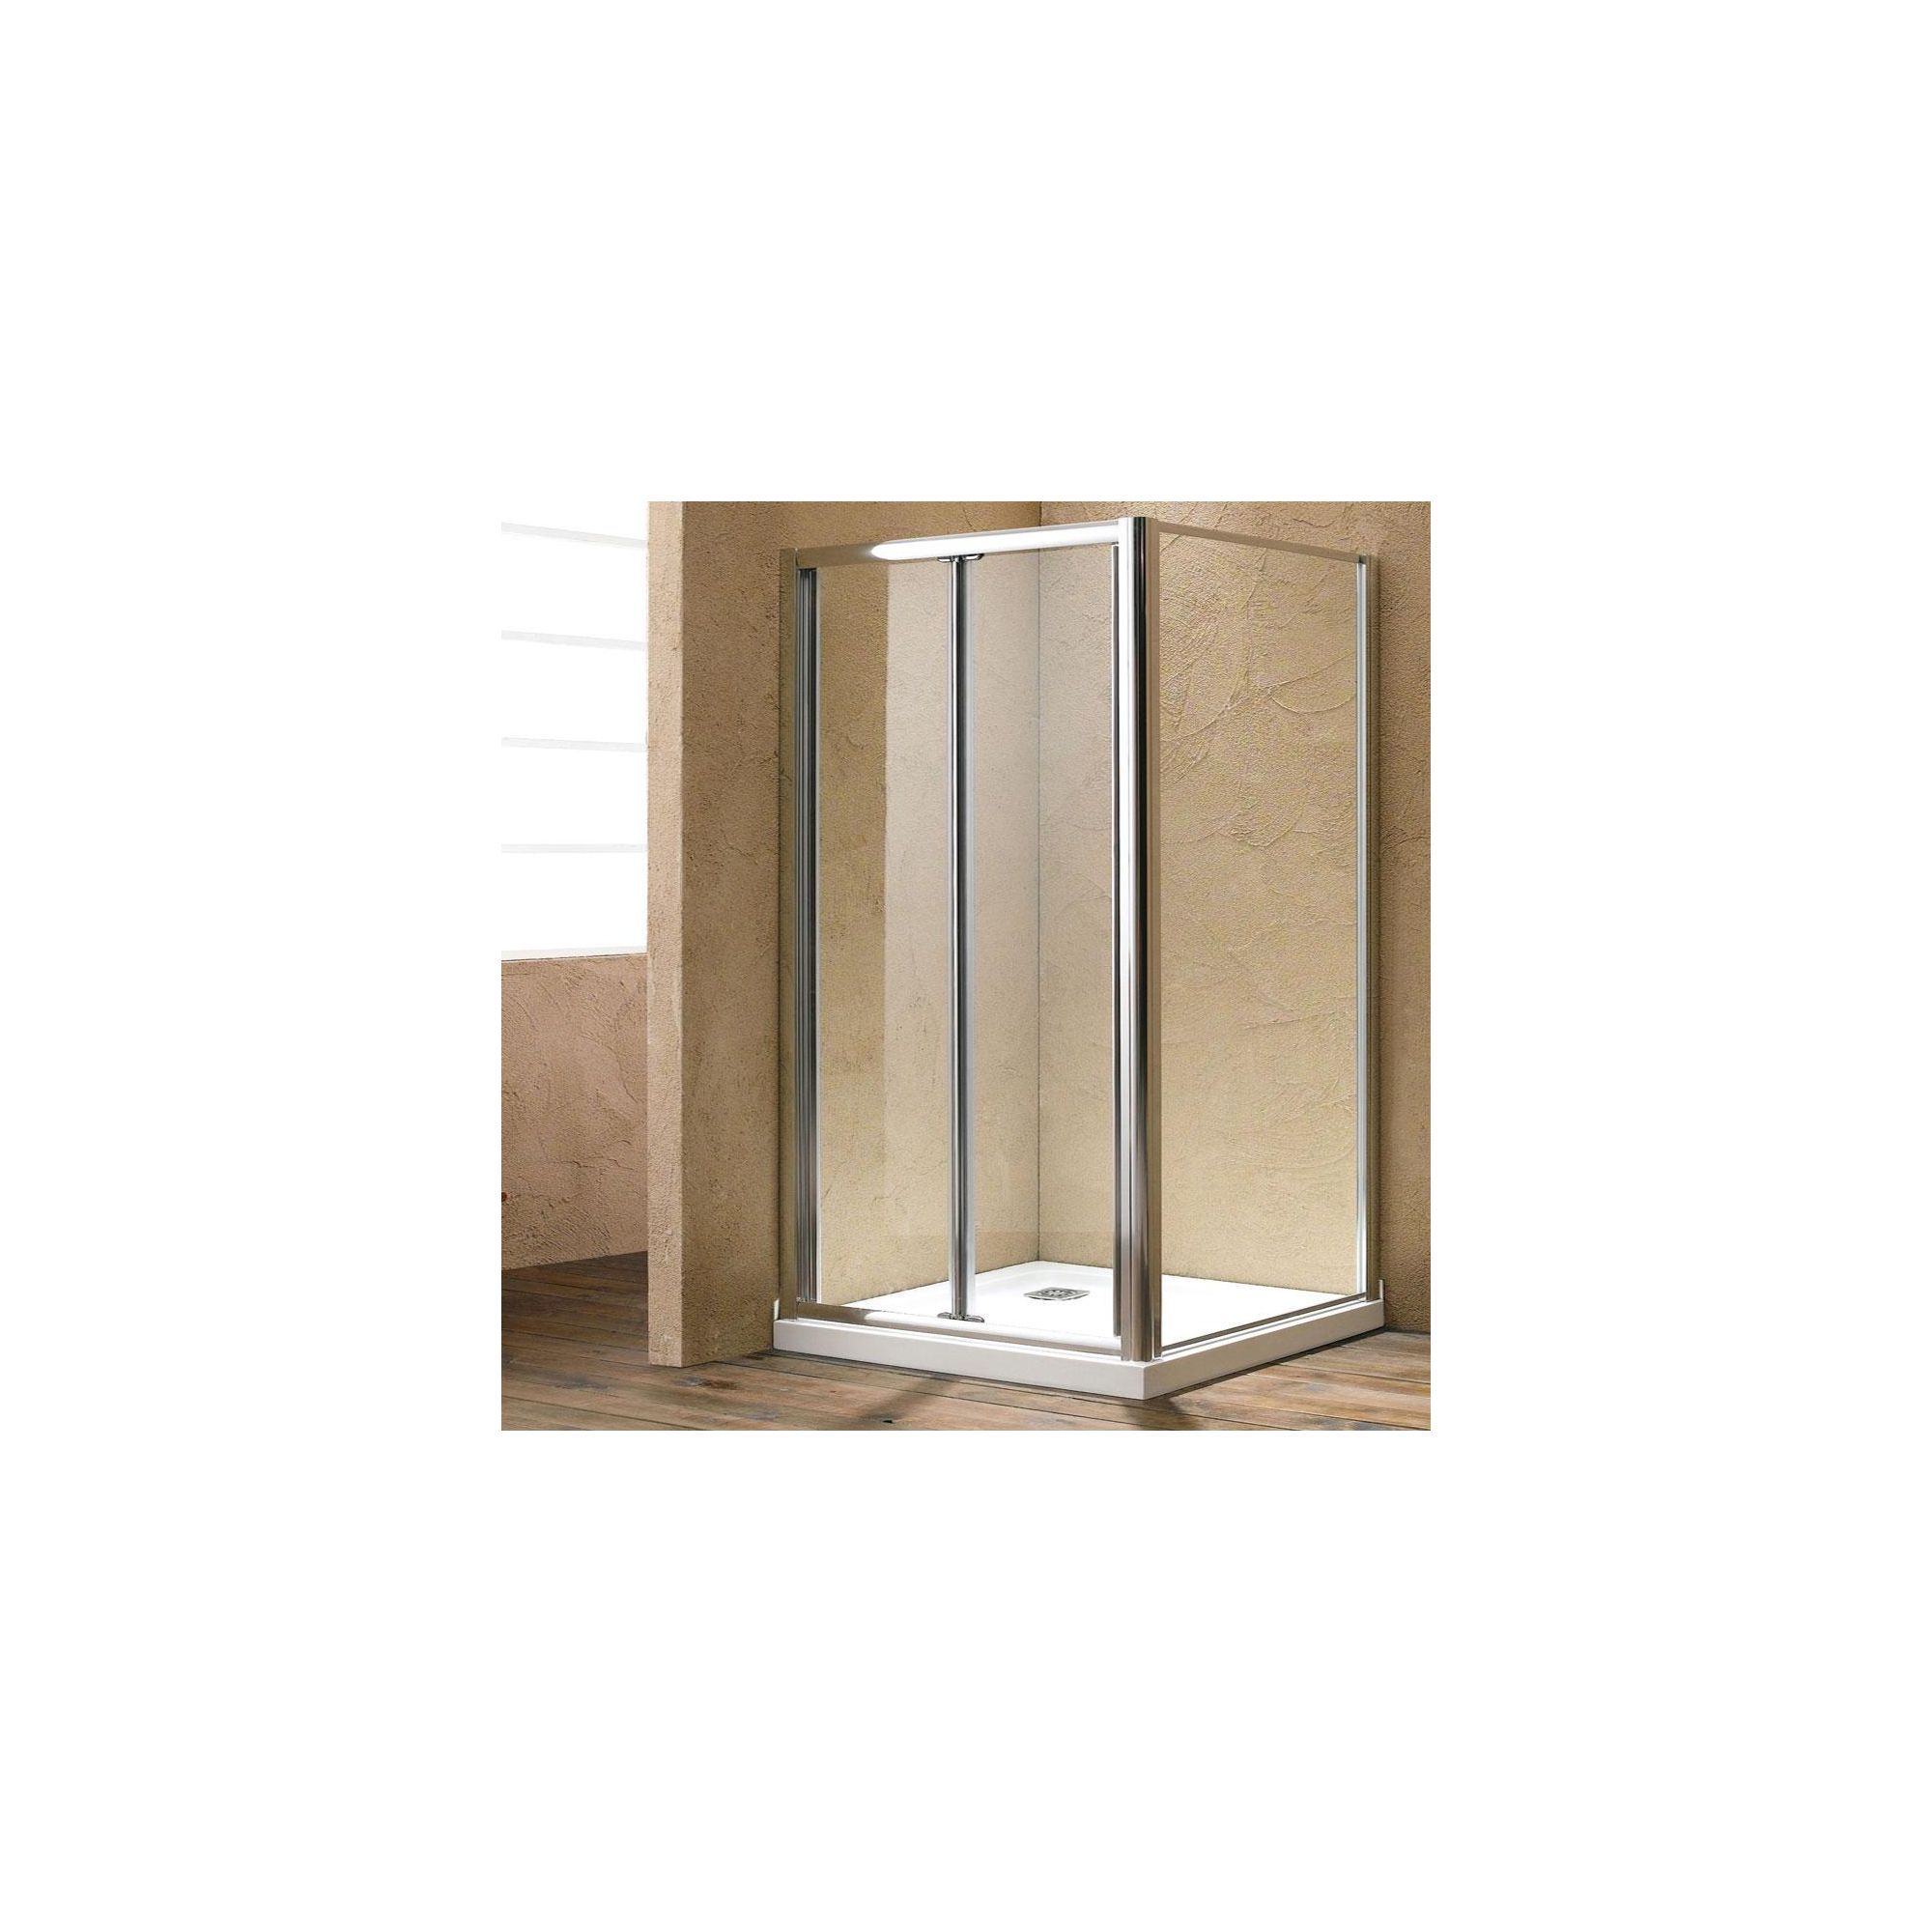 Duchy Style Twin Bi-Fold Door Shower Enclosure, 1200mm x 800mm, 6mm Glass, Low Profile Tray at Tescos Direct